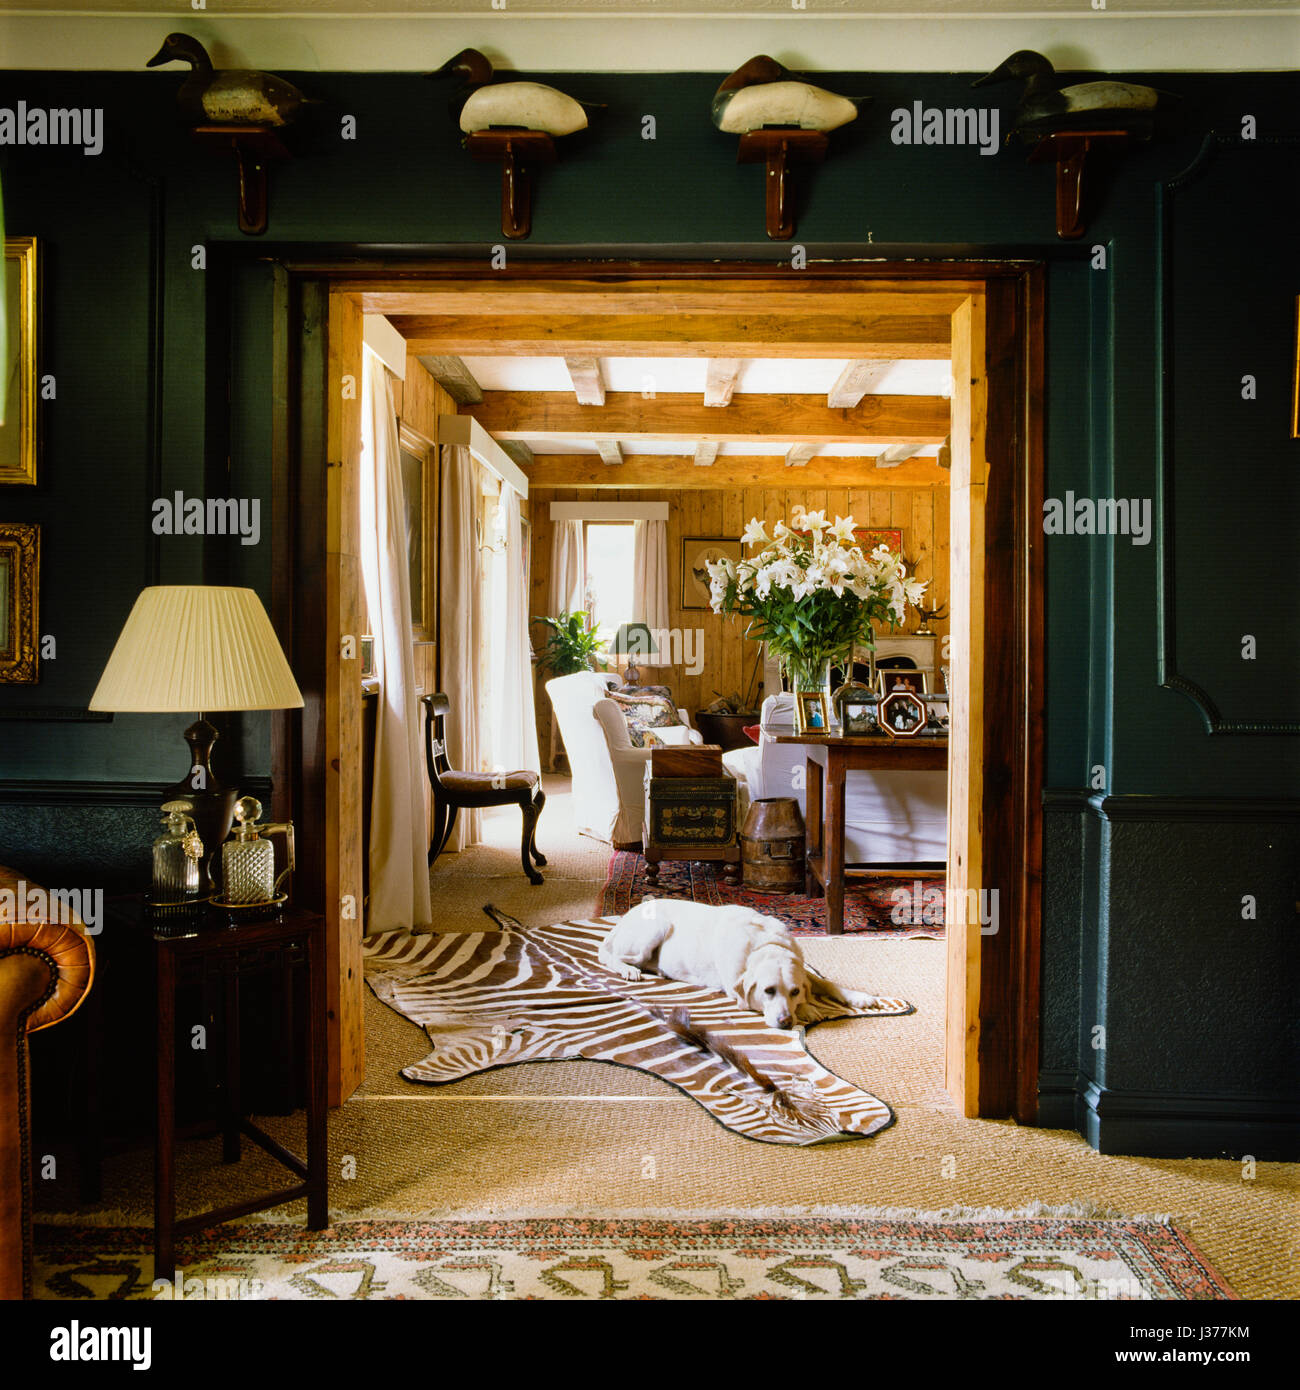 Rustic style doorway and living room. - Stock Image